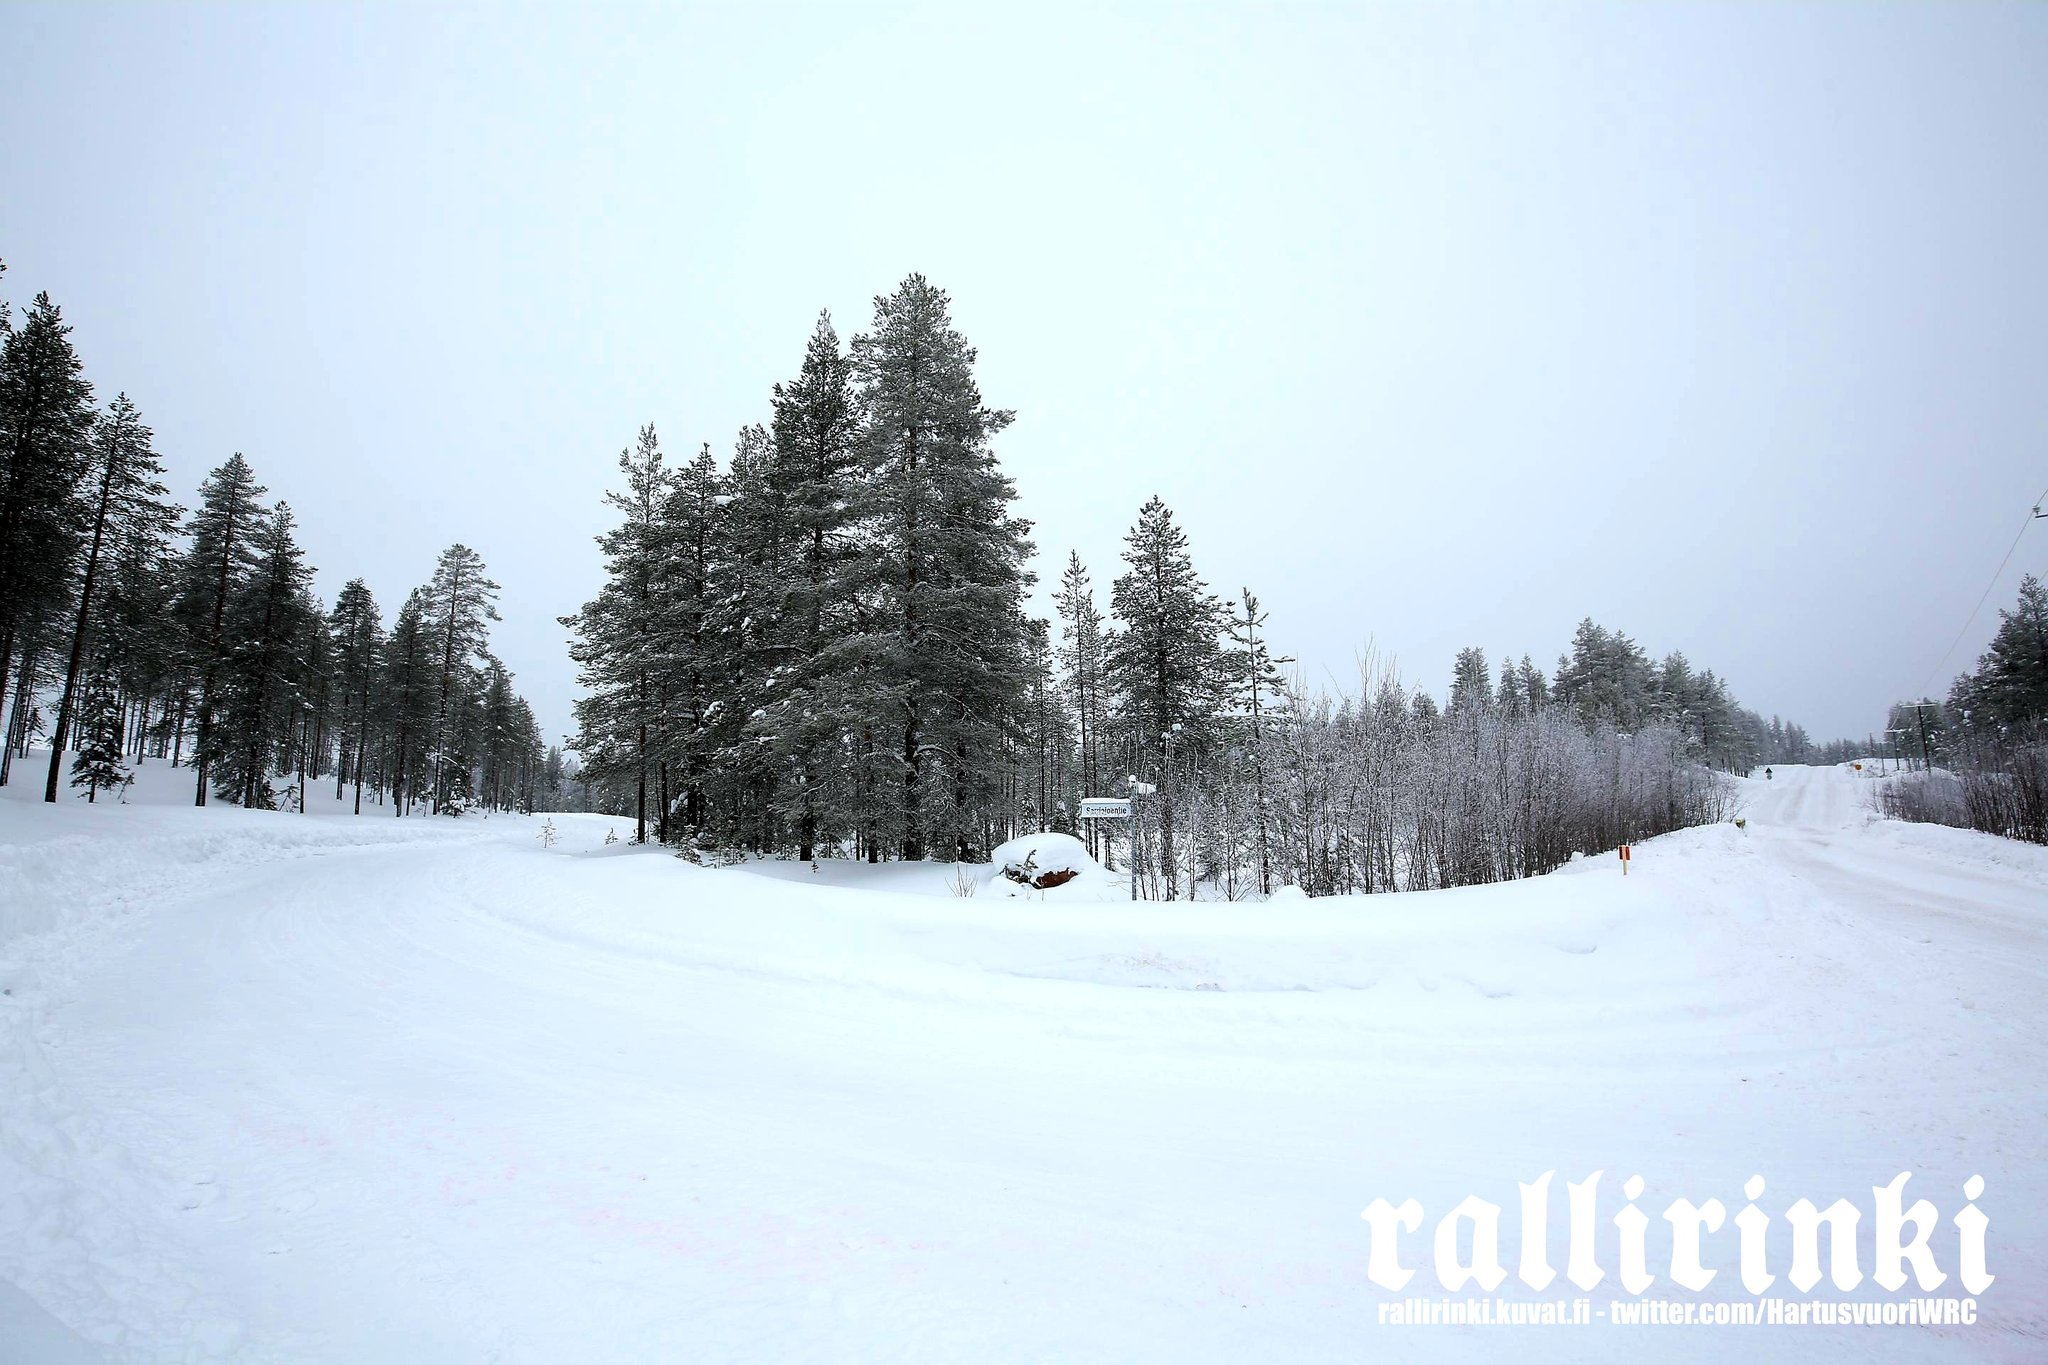 WRC: Arctic Rally Finland - Powered by CapitalBox [26-28 Febrero] Eu_O9eJXAAAiKMA?format=jpg&name=large